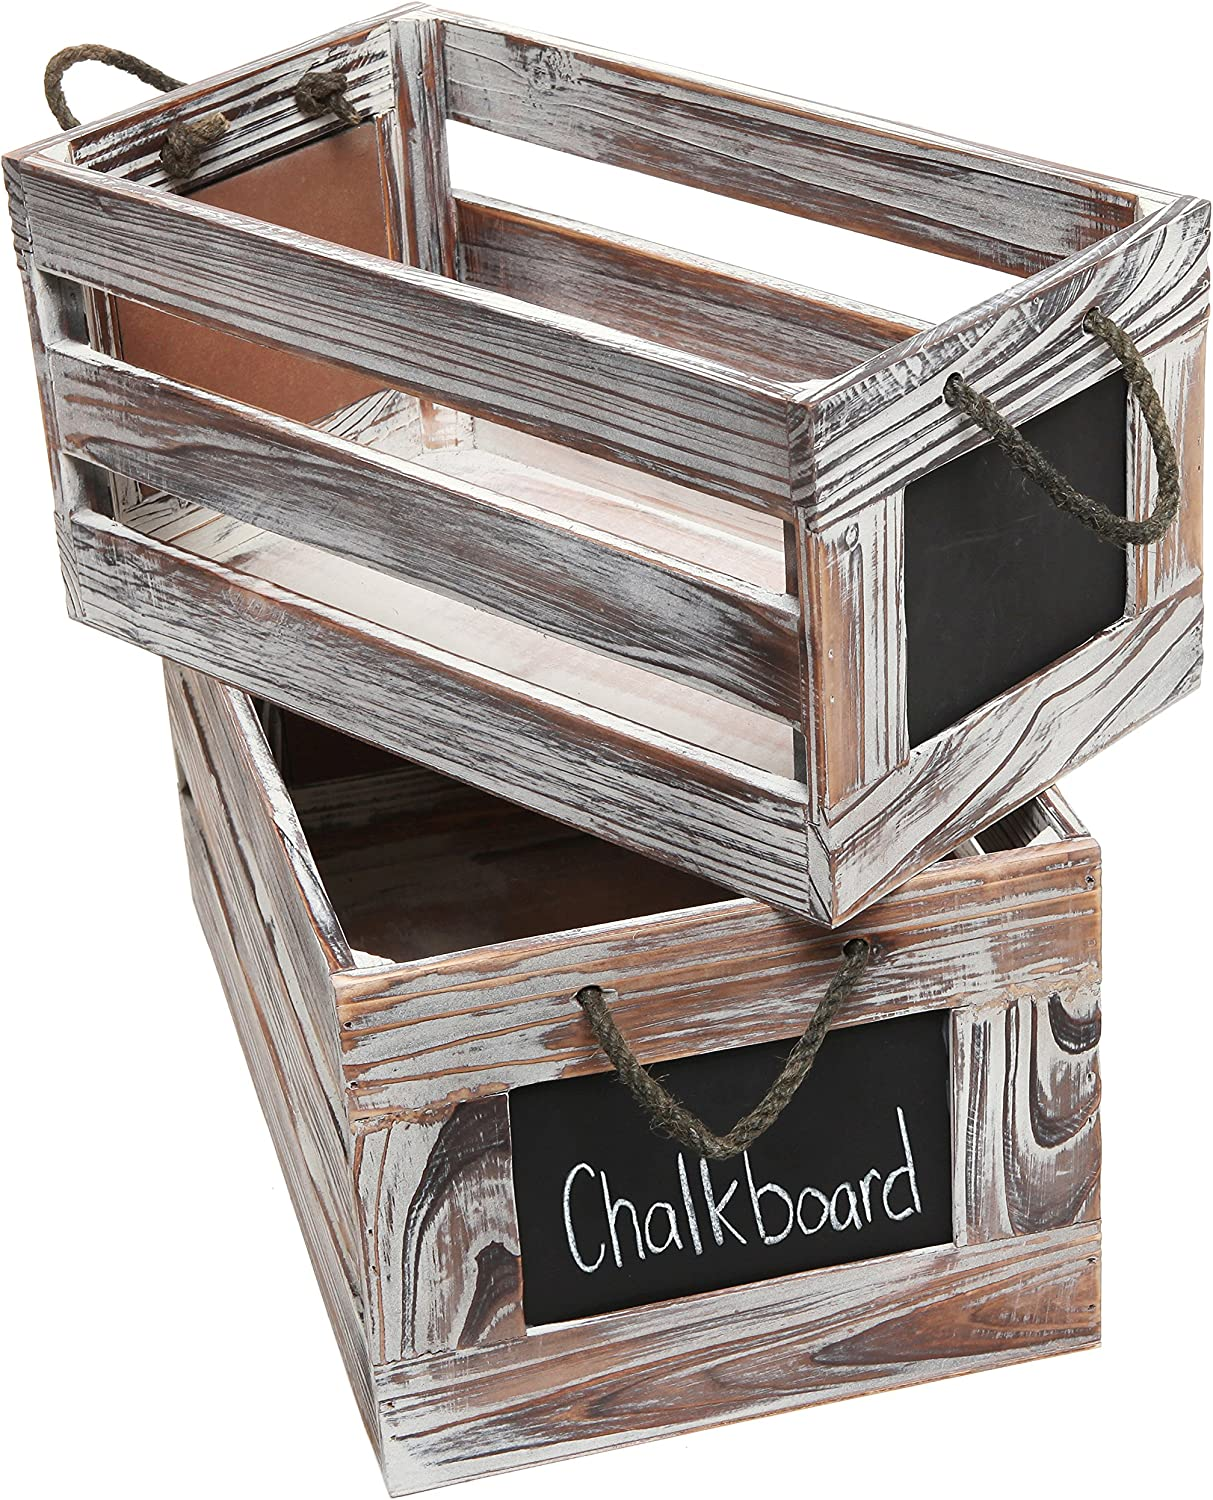 MyGift Torched Wood Finish Decorative Boxes, Nesting Storage Crates with Chalkboard Labels and Handles, Set of 2